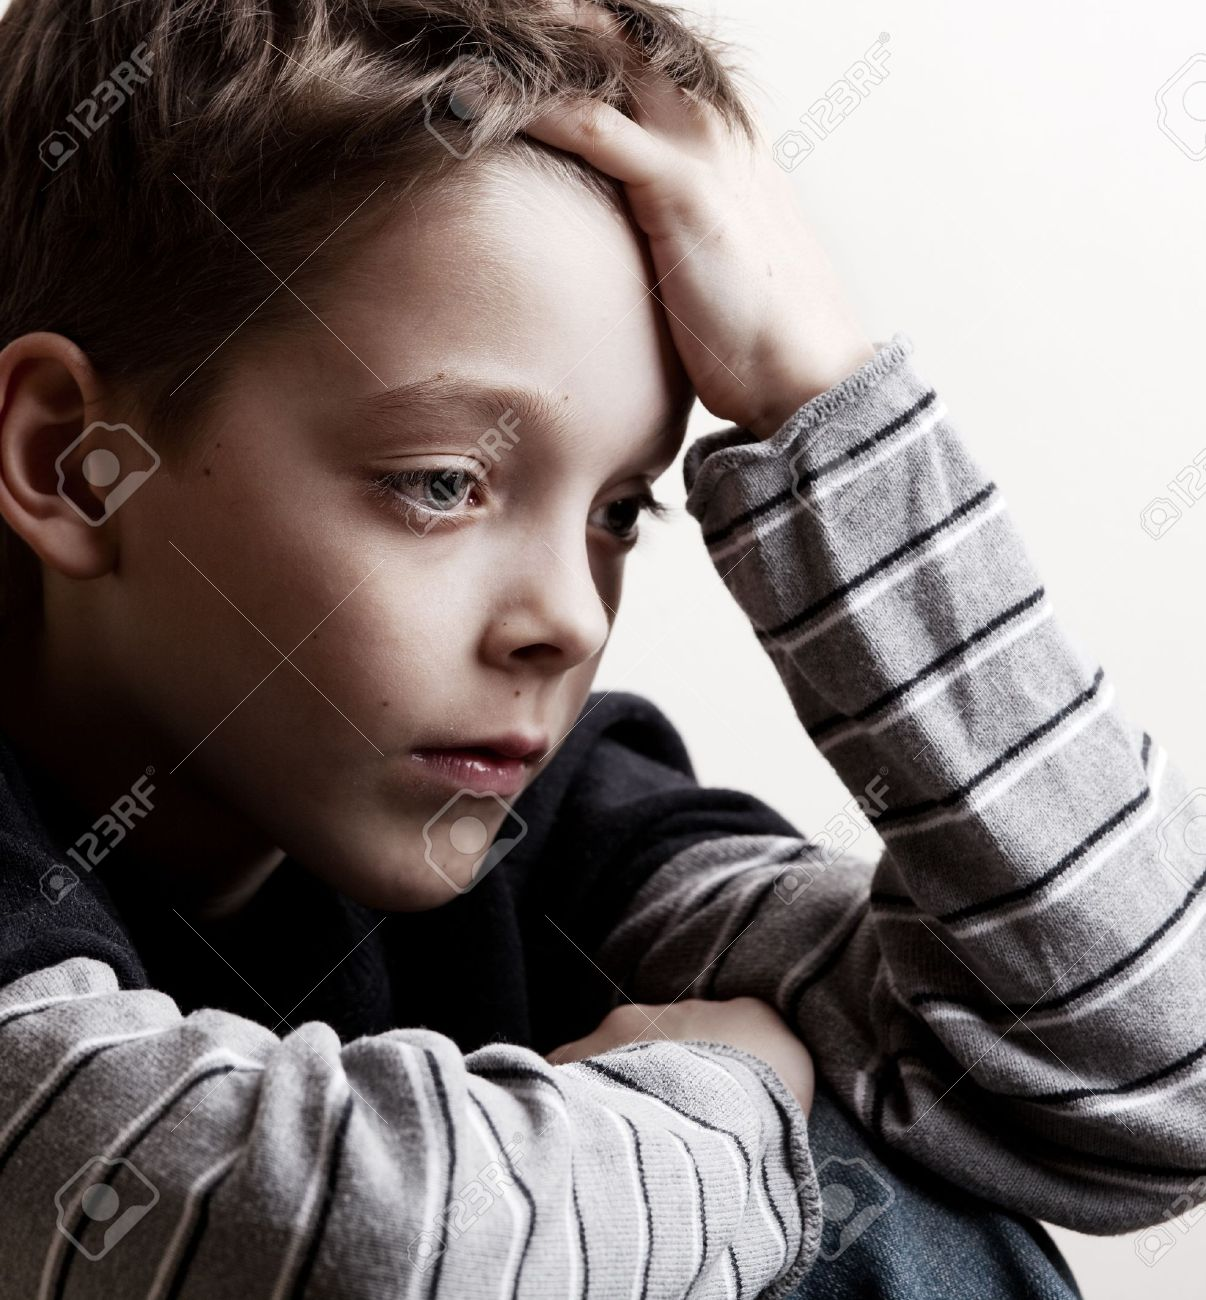 Sad boy. Depressed teenager at home. Problems at family Stock Photo - 13085459